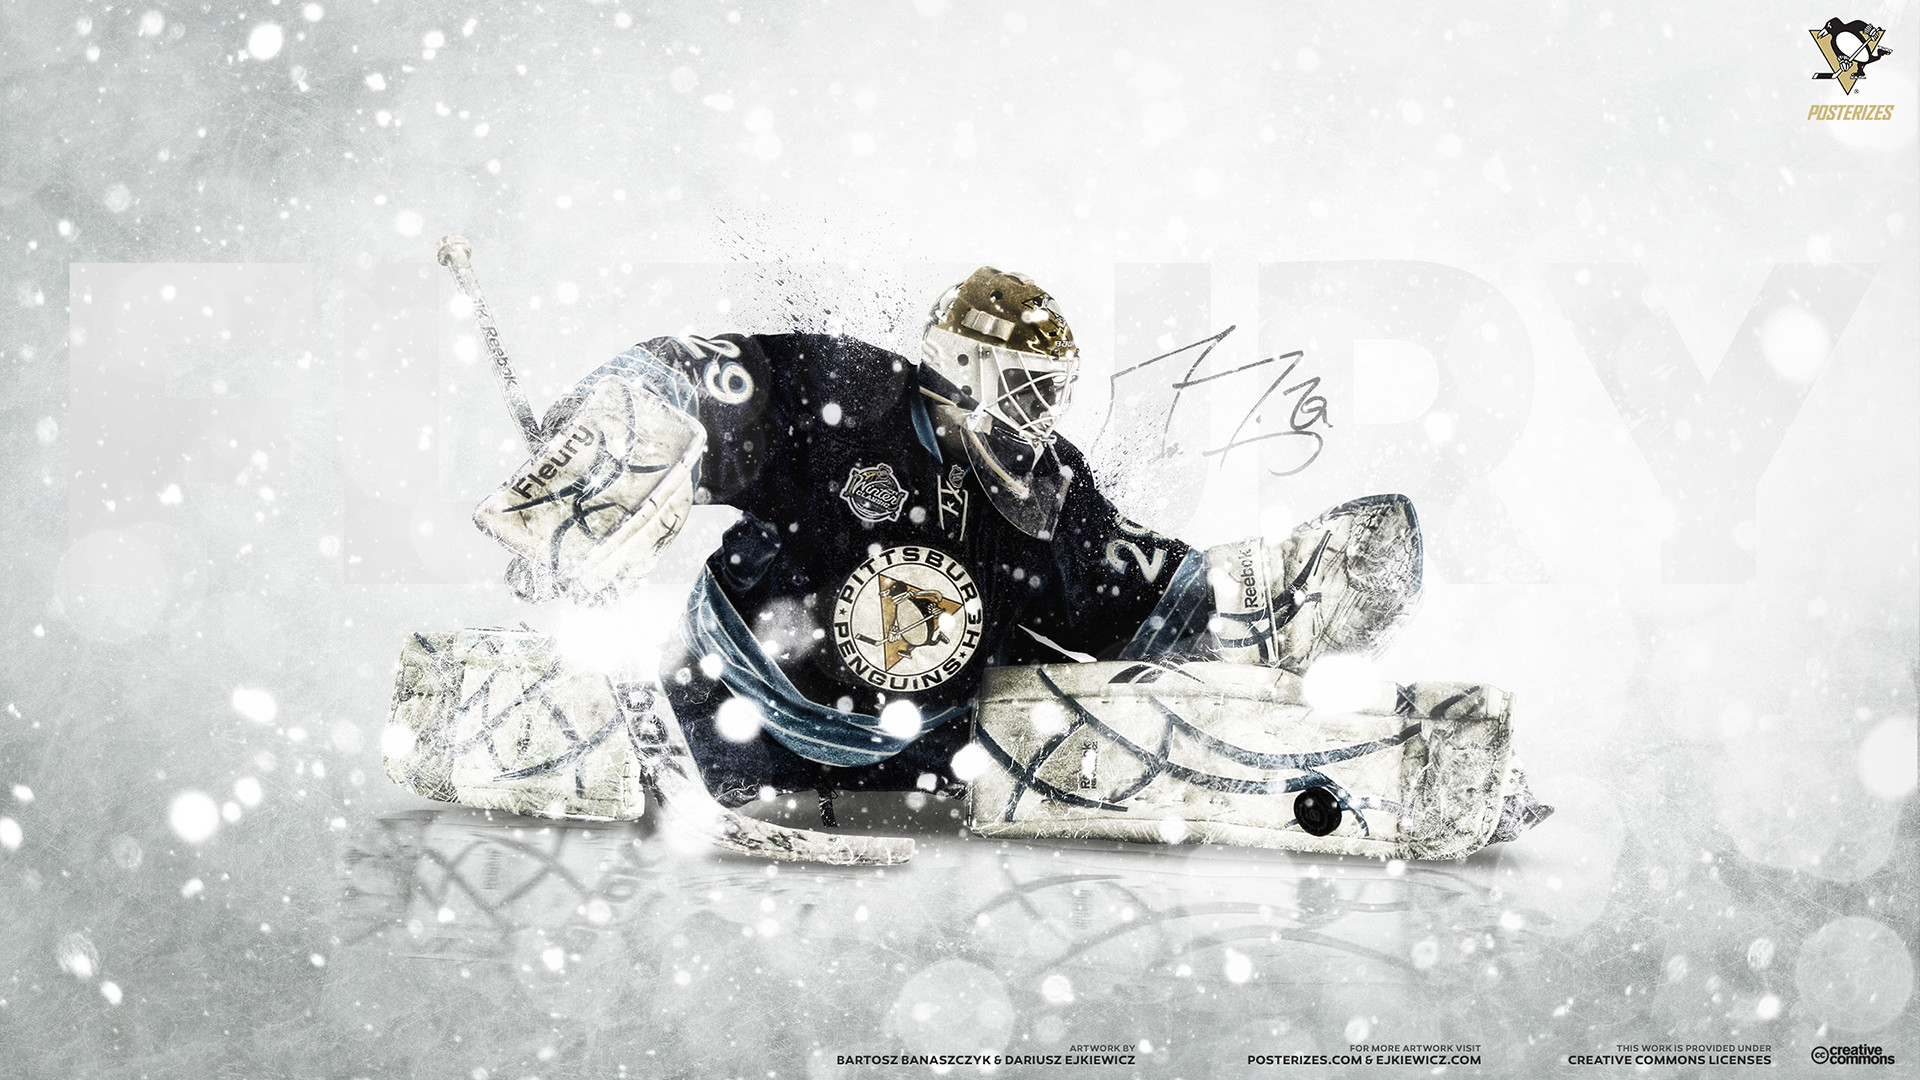 1920x1080 5. pittsburgh-penguins-wallpaper5-600x338